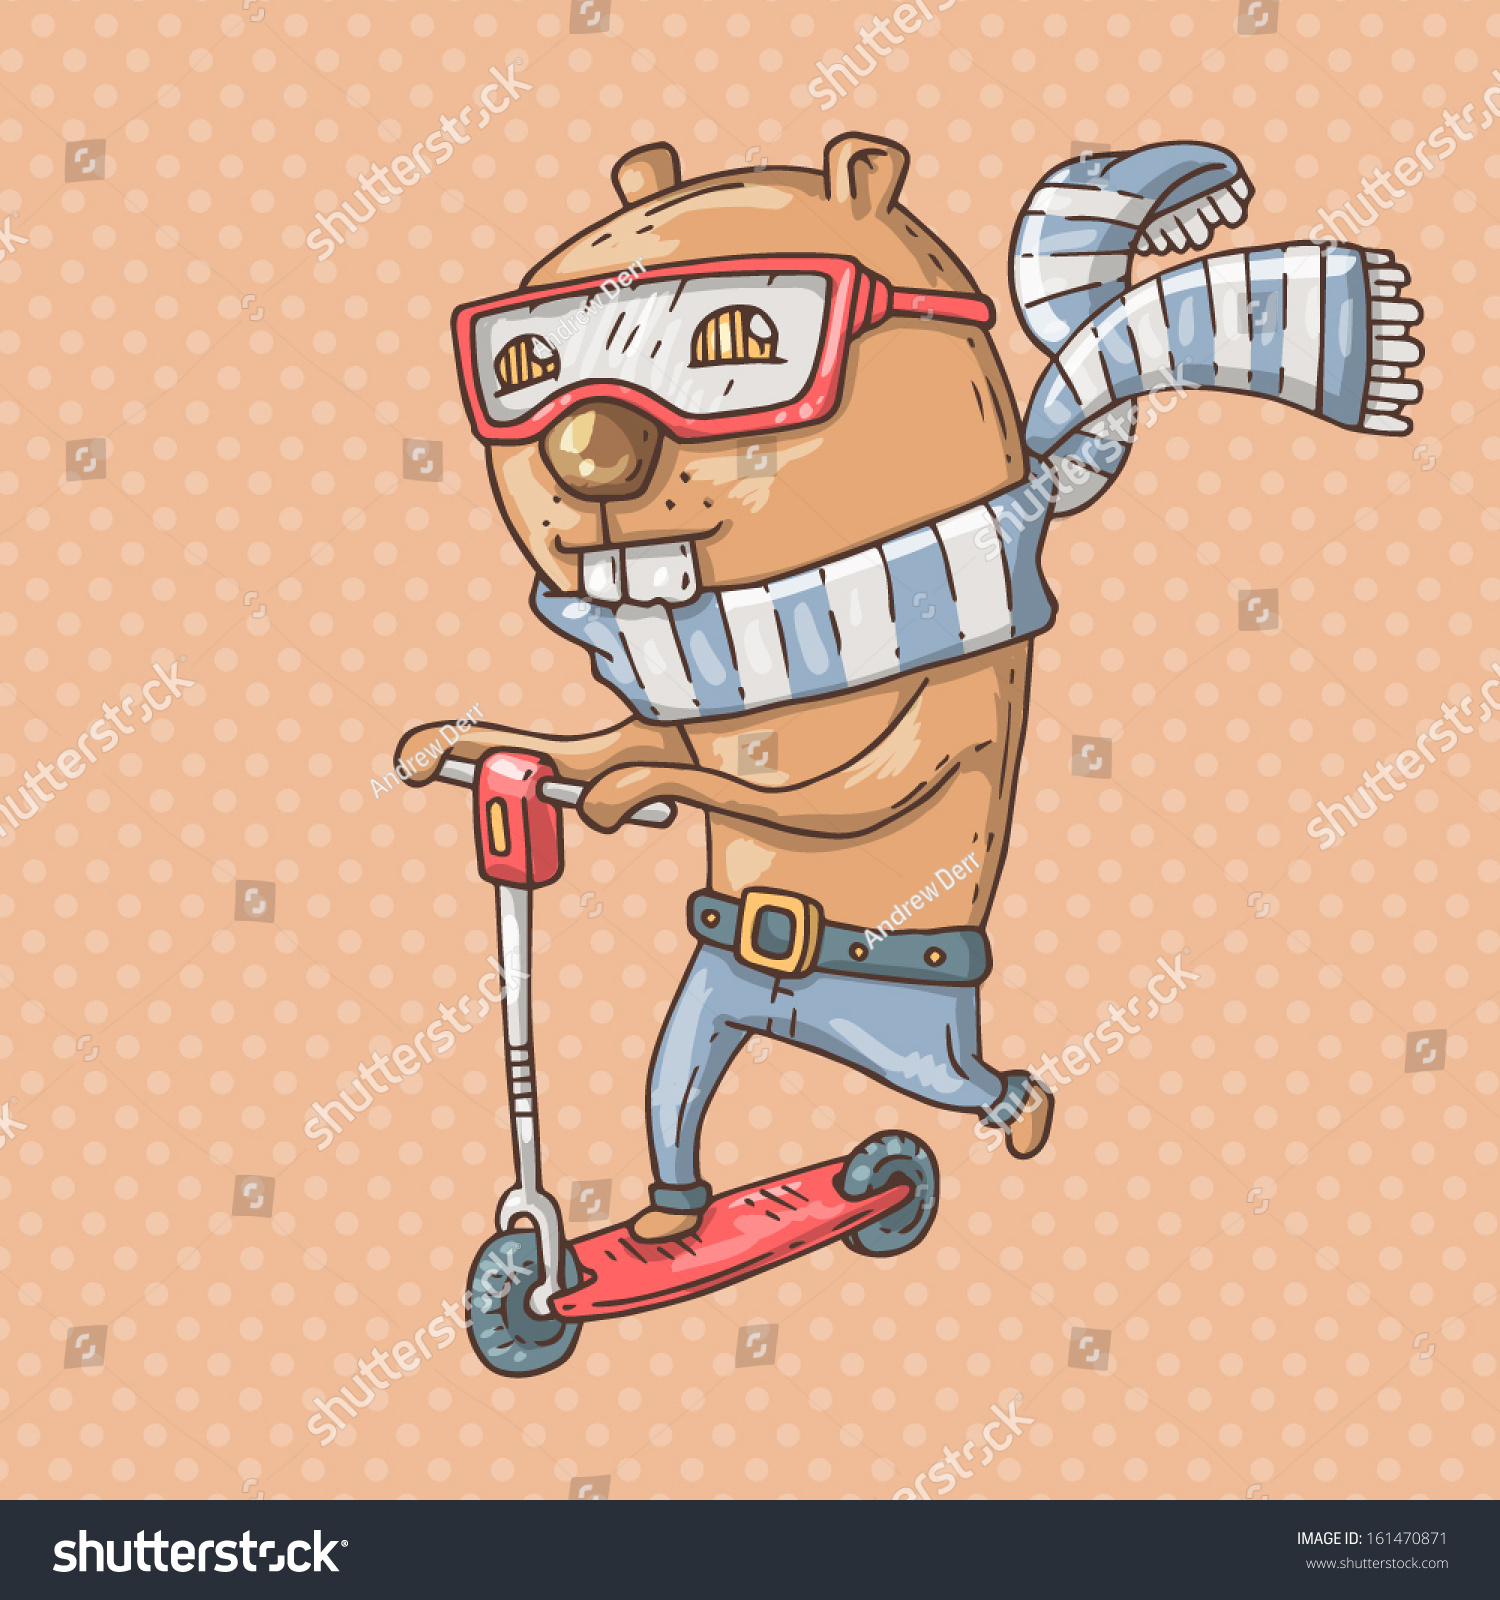 Beaver On Scooter Stock Vector (Royalty Free) 161470871 - Shutterstock